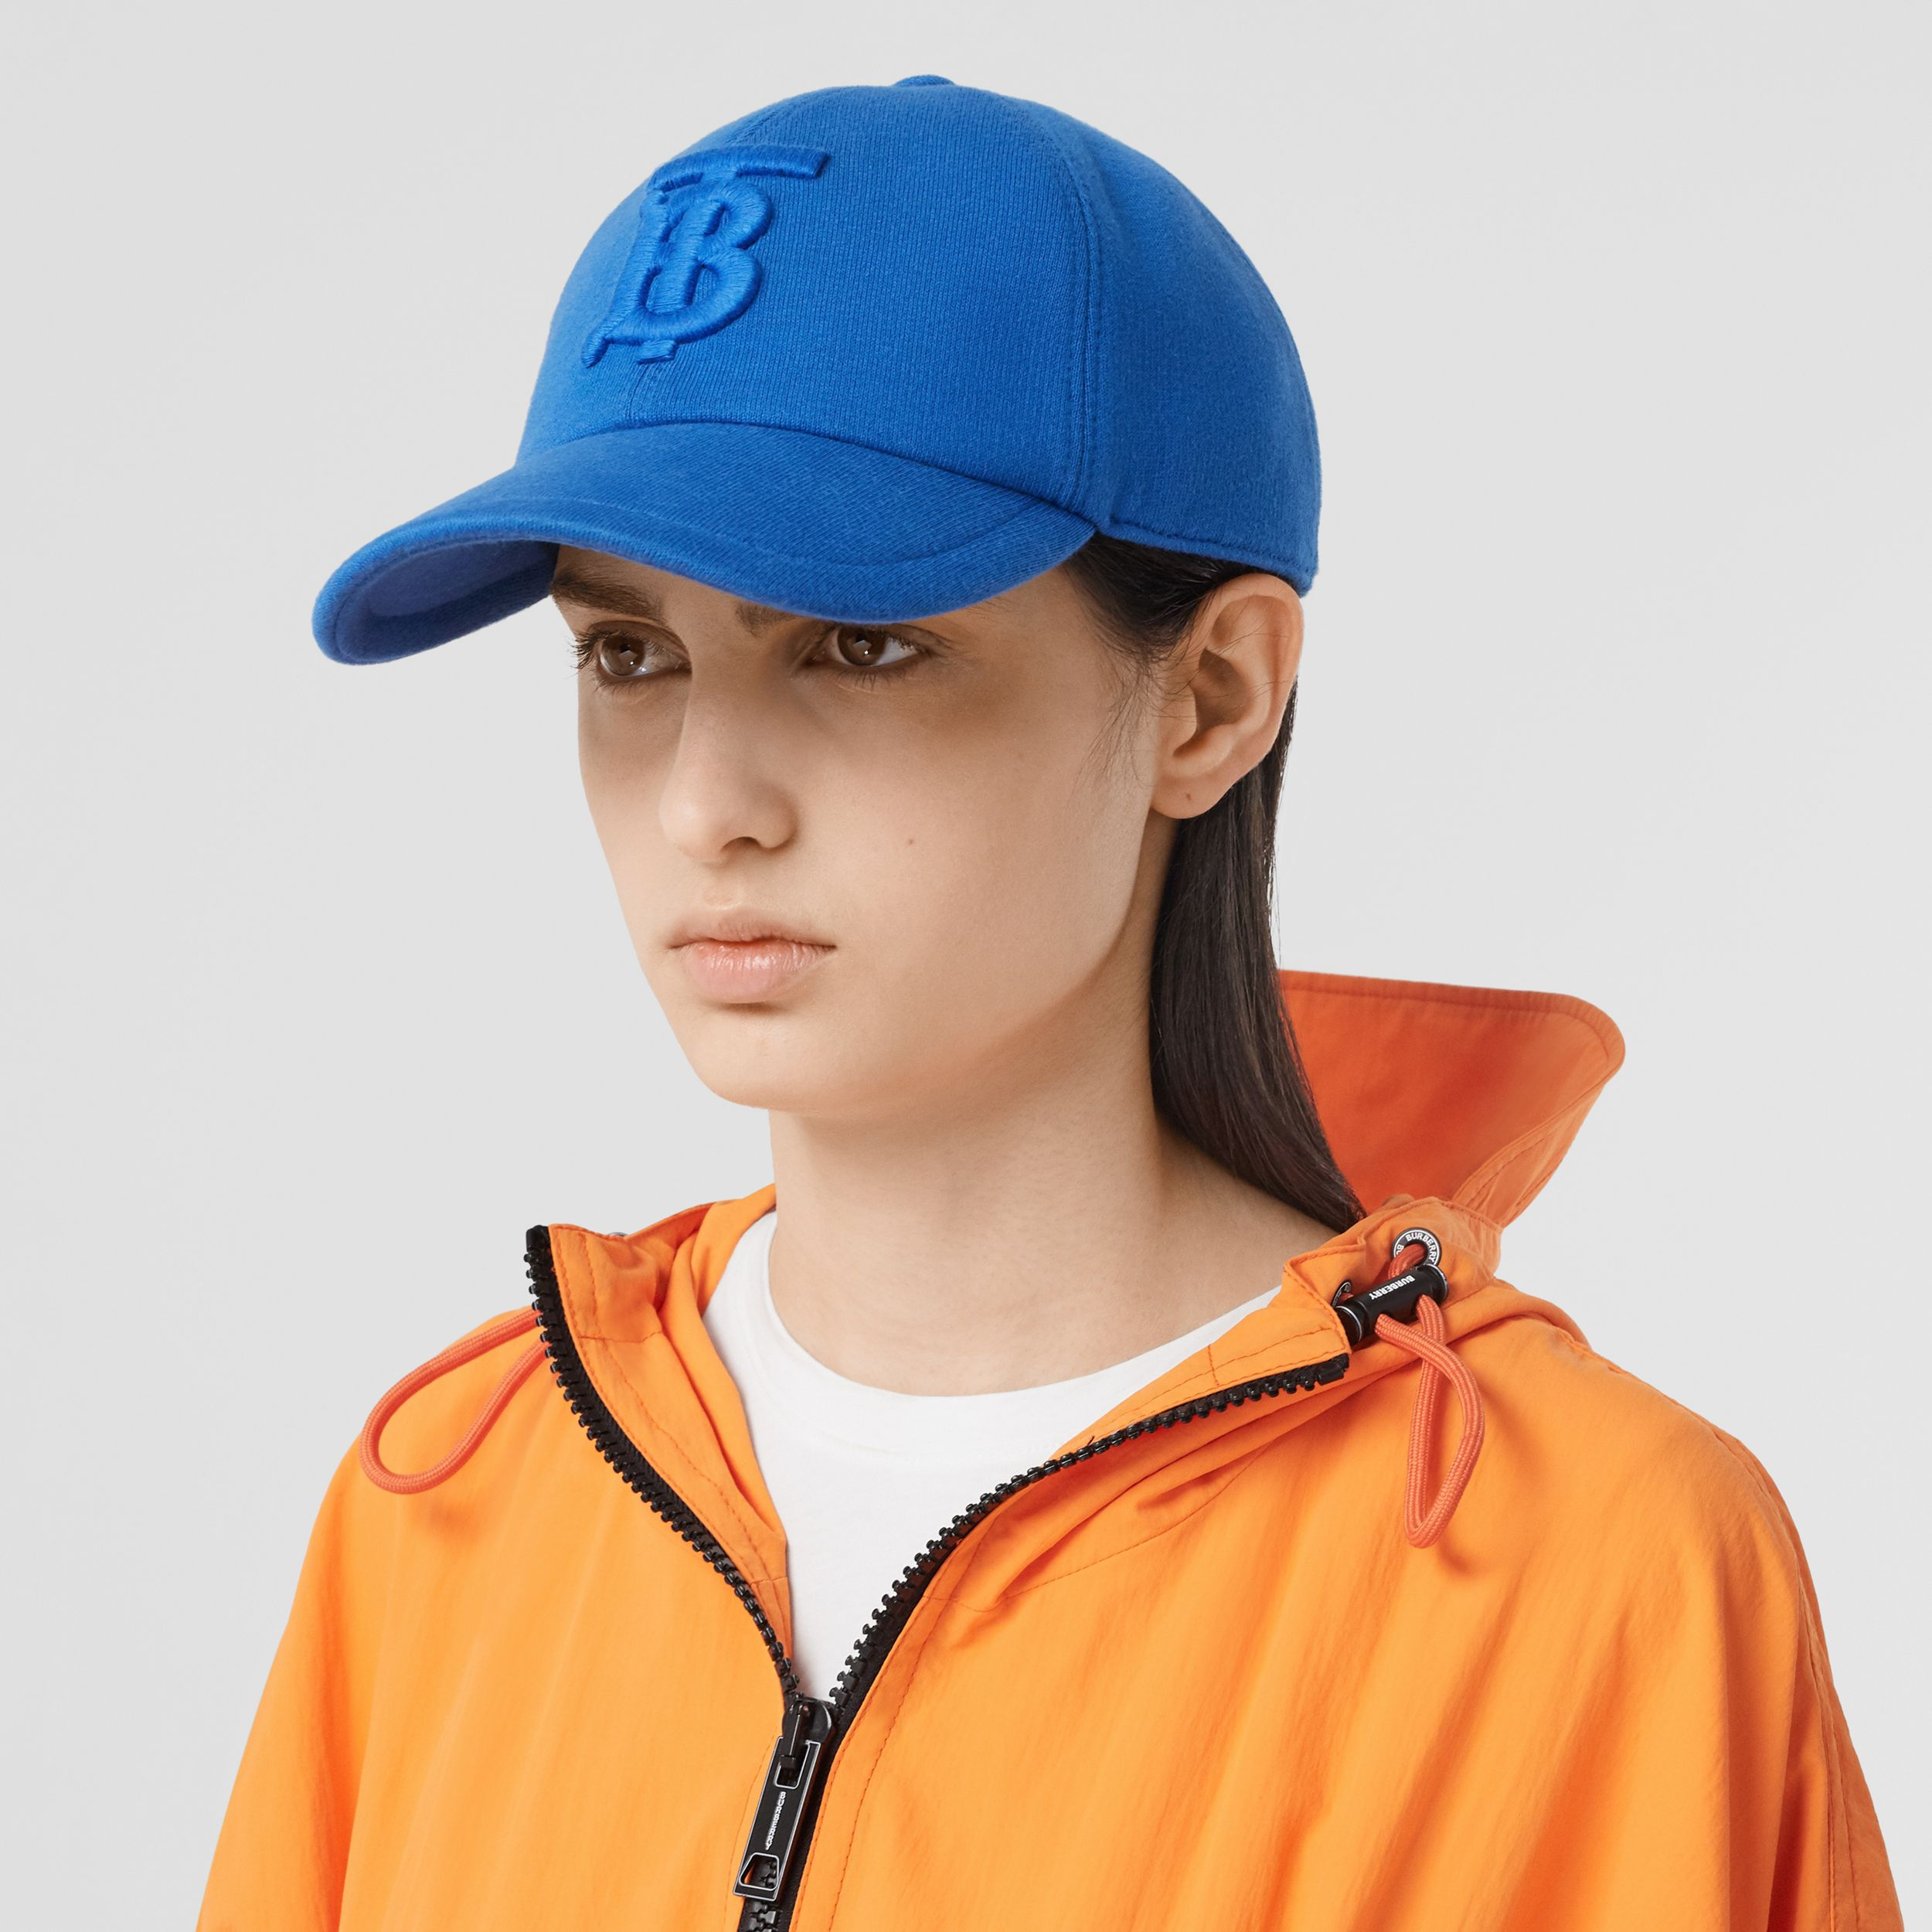 Monogram Motif Jersey Baseball Cap in Vibrant Blue | Burberry - 3